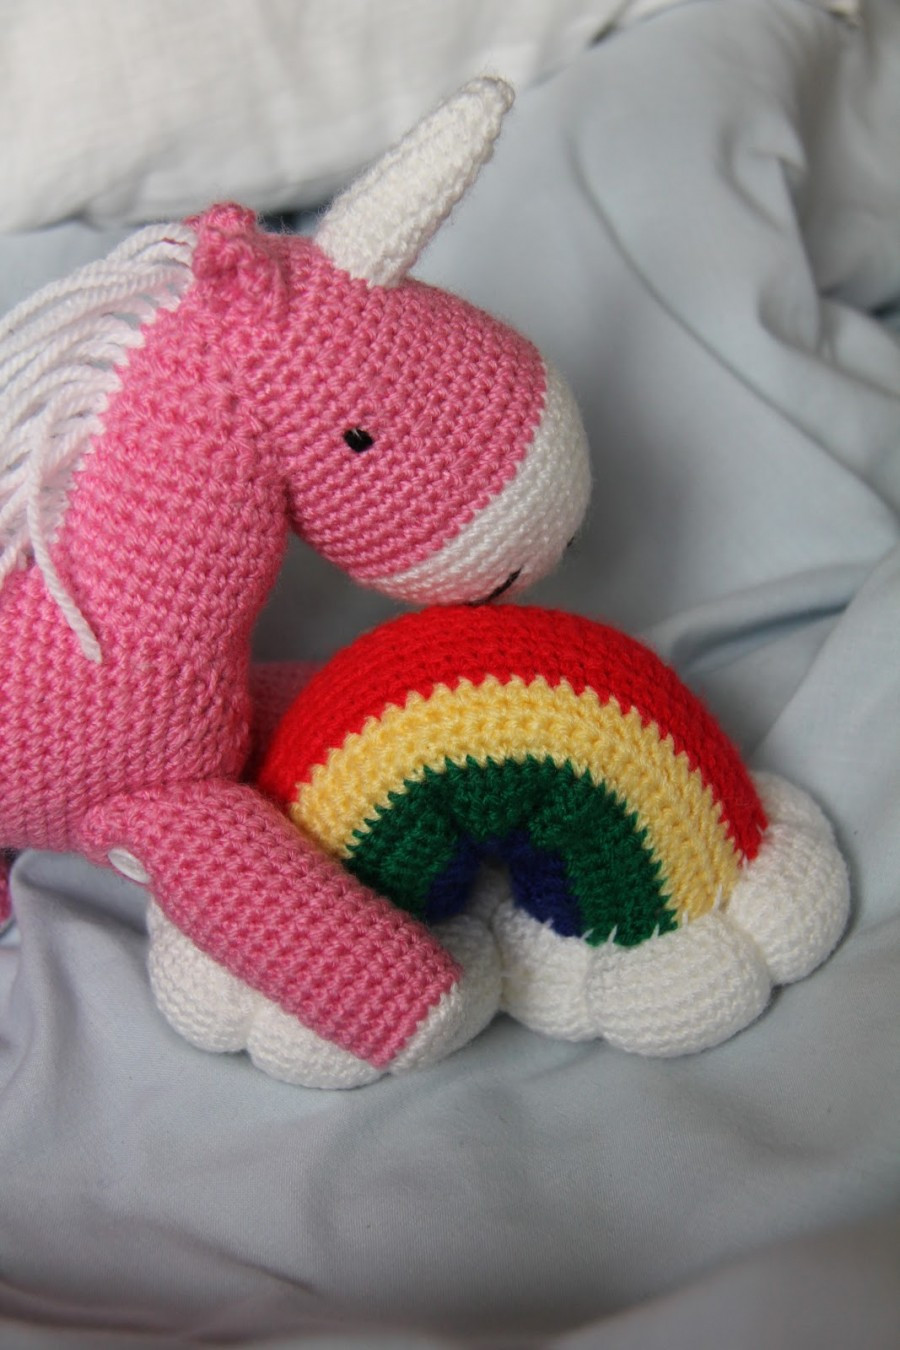 Crochet Unicorn Awesome Unicorn Crochet Patterns Of Charming 42 Pics Crochet Unicorn